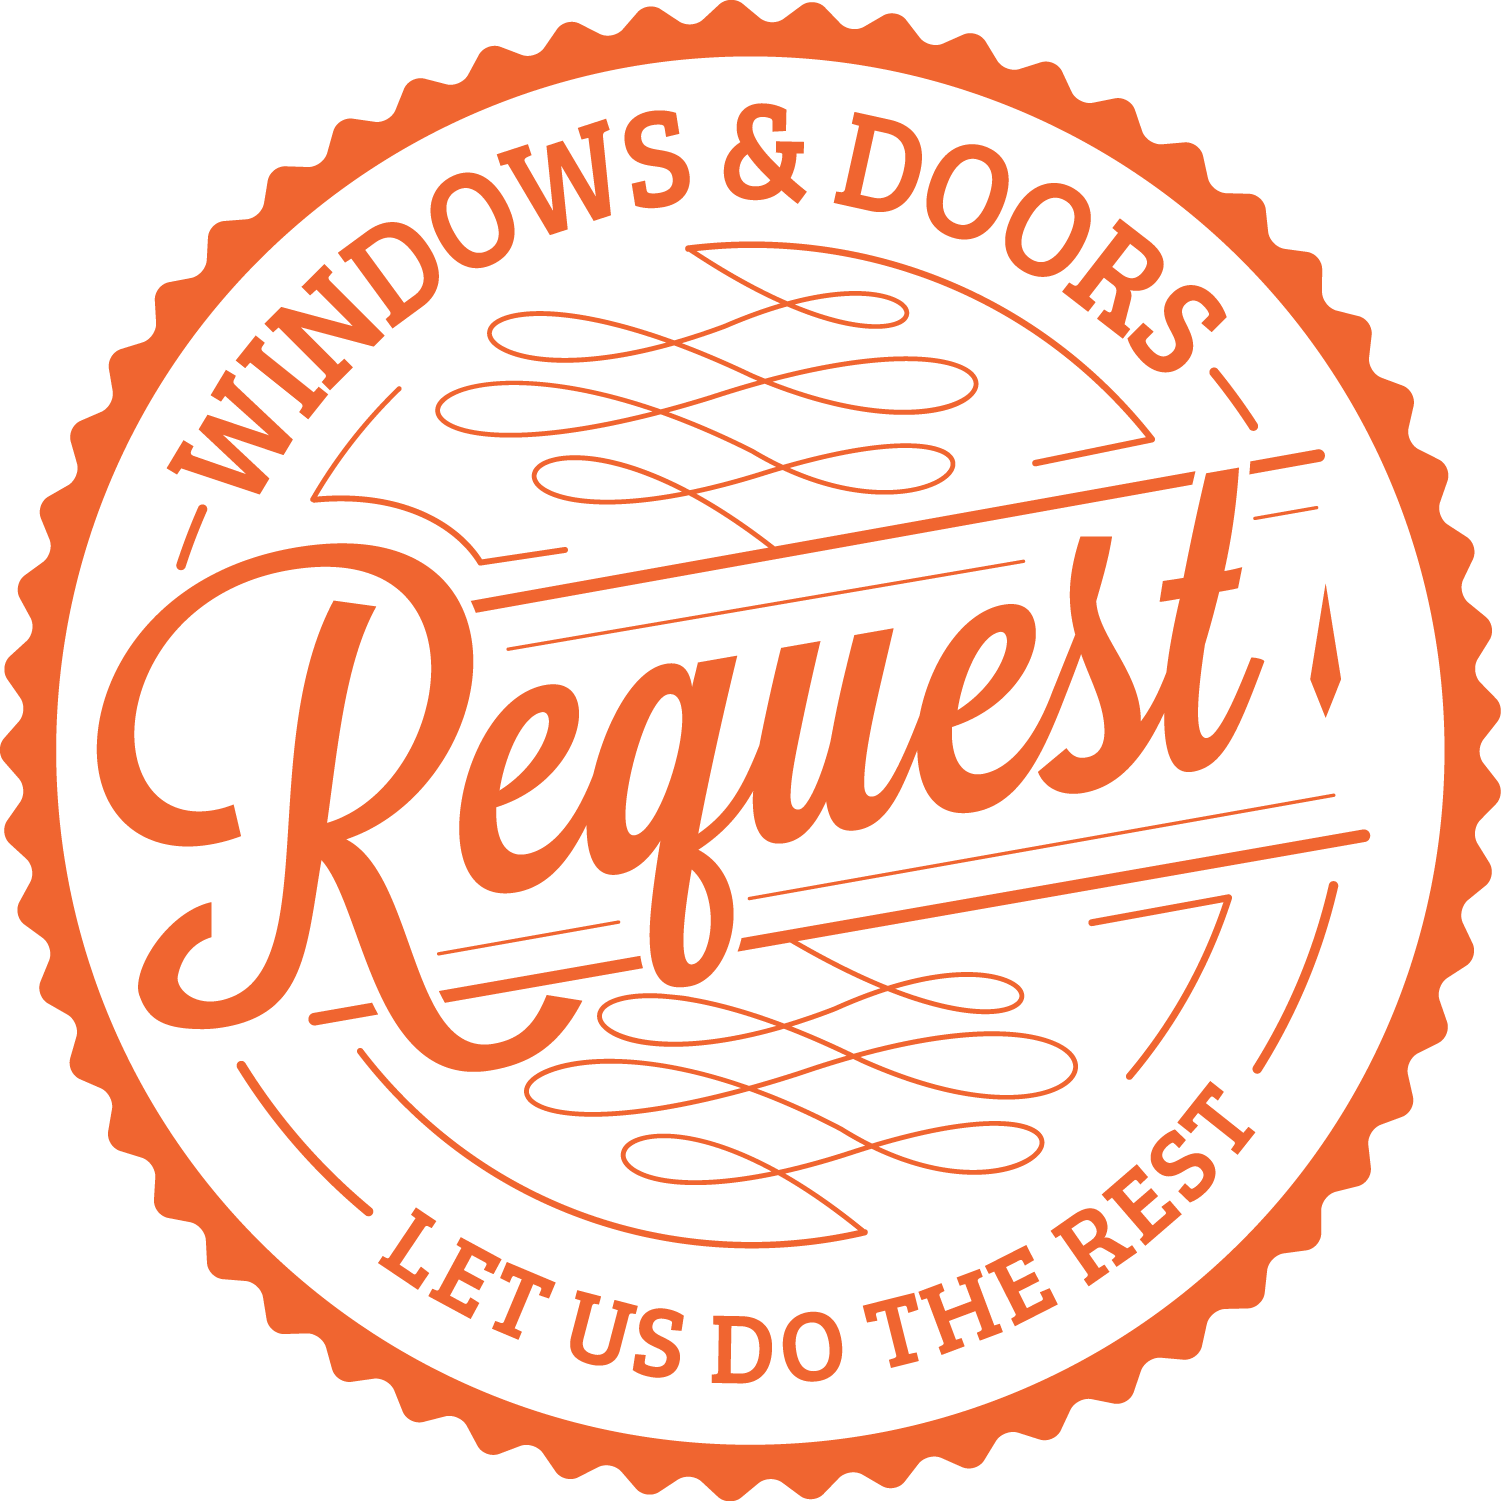 Request Windows & Doors Inc.